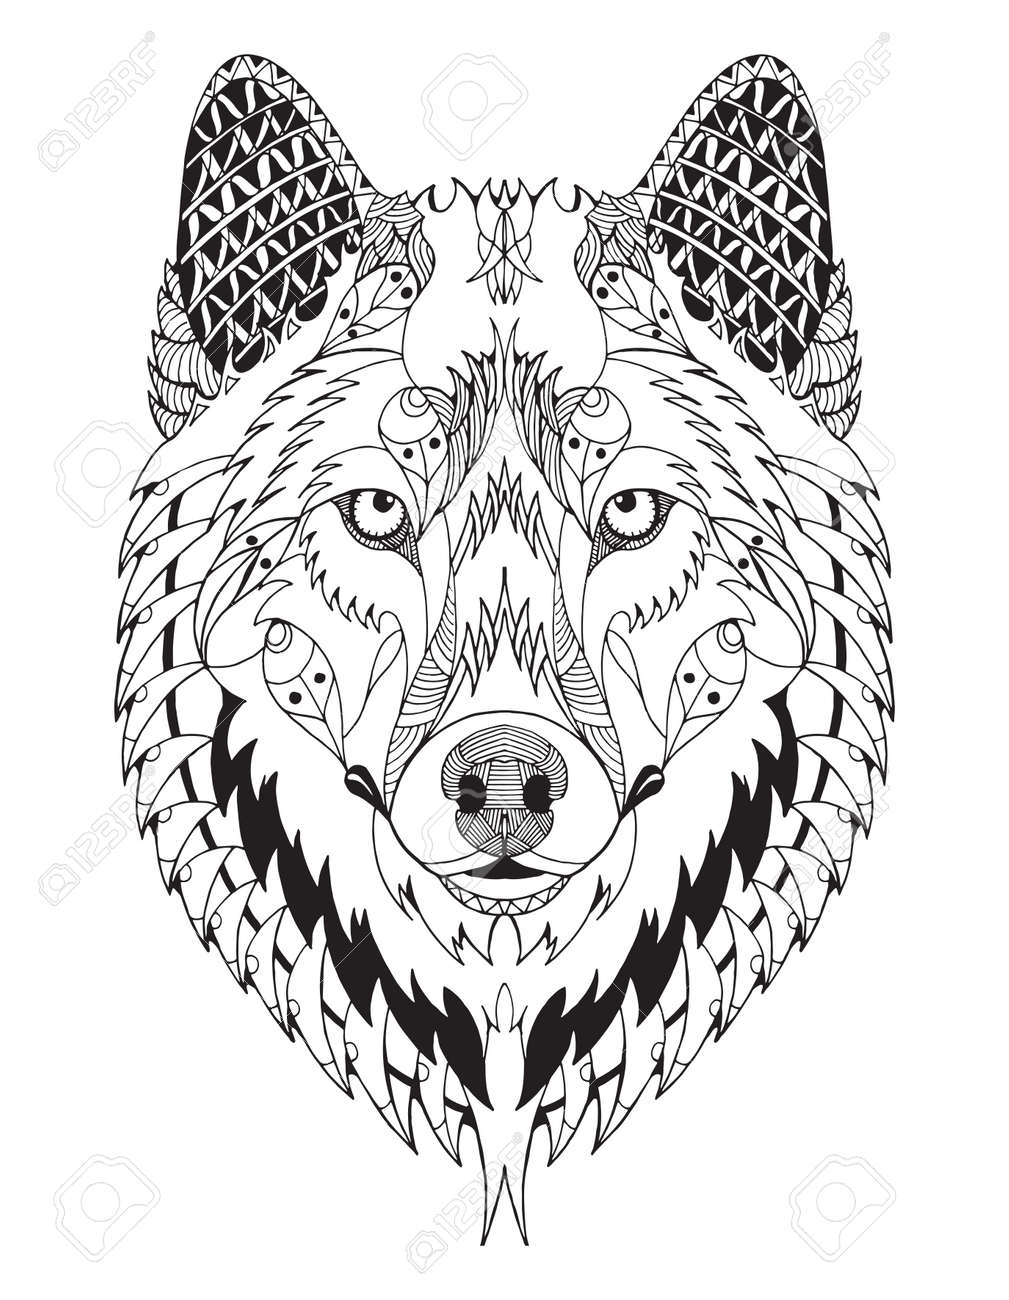 Gray Wolf Head Zentangle Stylized Vector Illustration Freehand